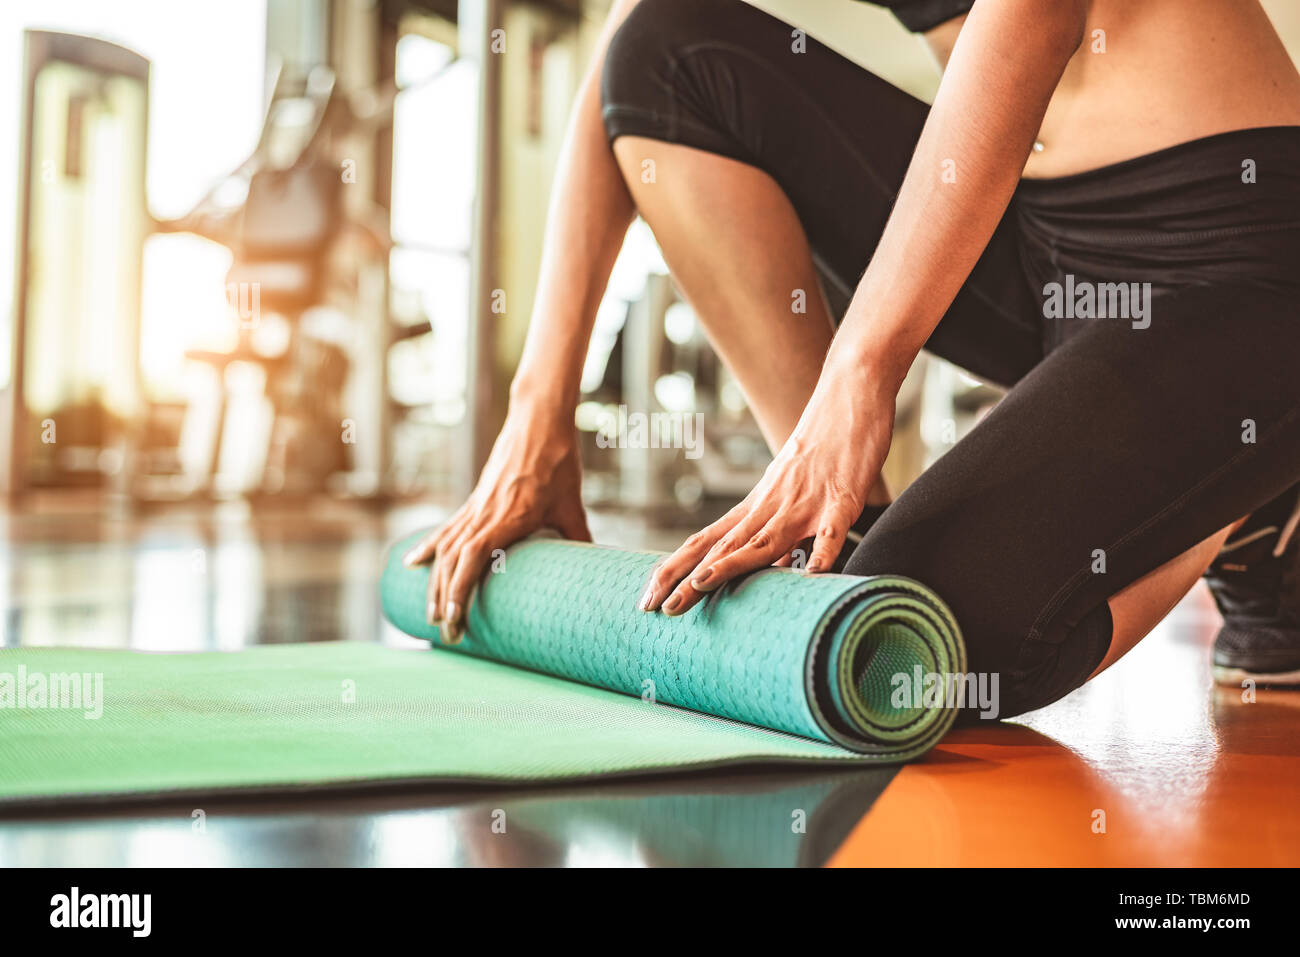 Close Up Of Sporty Woman Folding Yoga Mattress In Sport Fitness Gym Training Center Background Exercise Mat Rolling Keeping After Yoga Class Workout Stock Photo Alamy